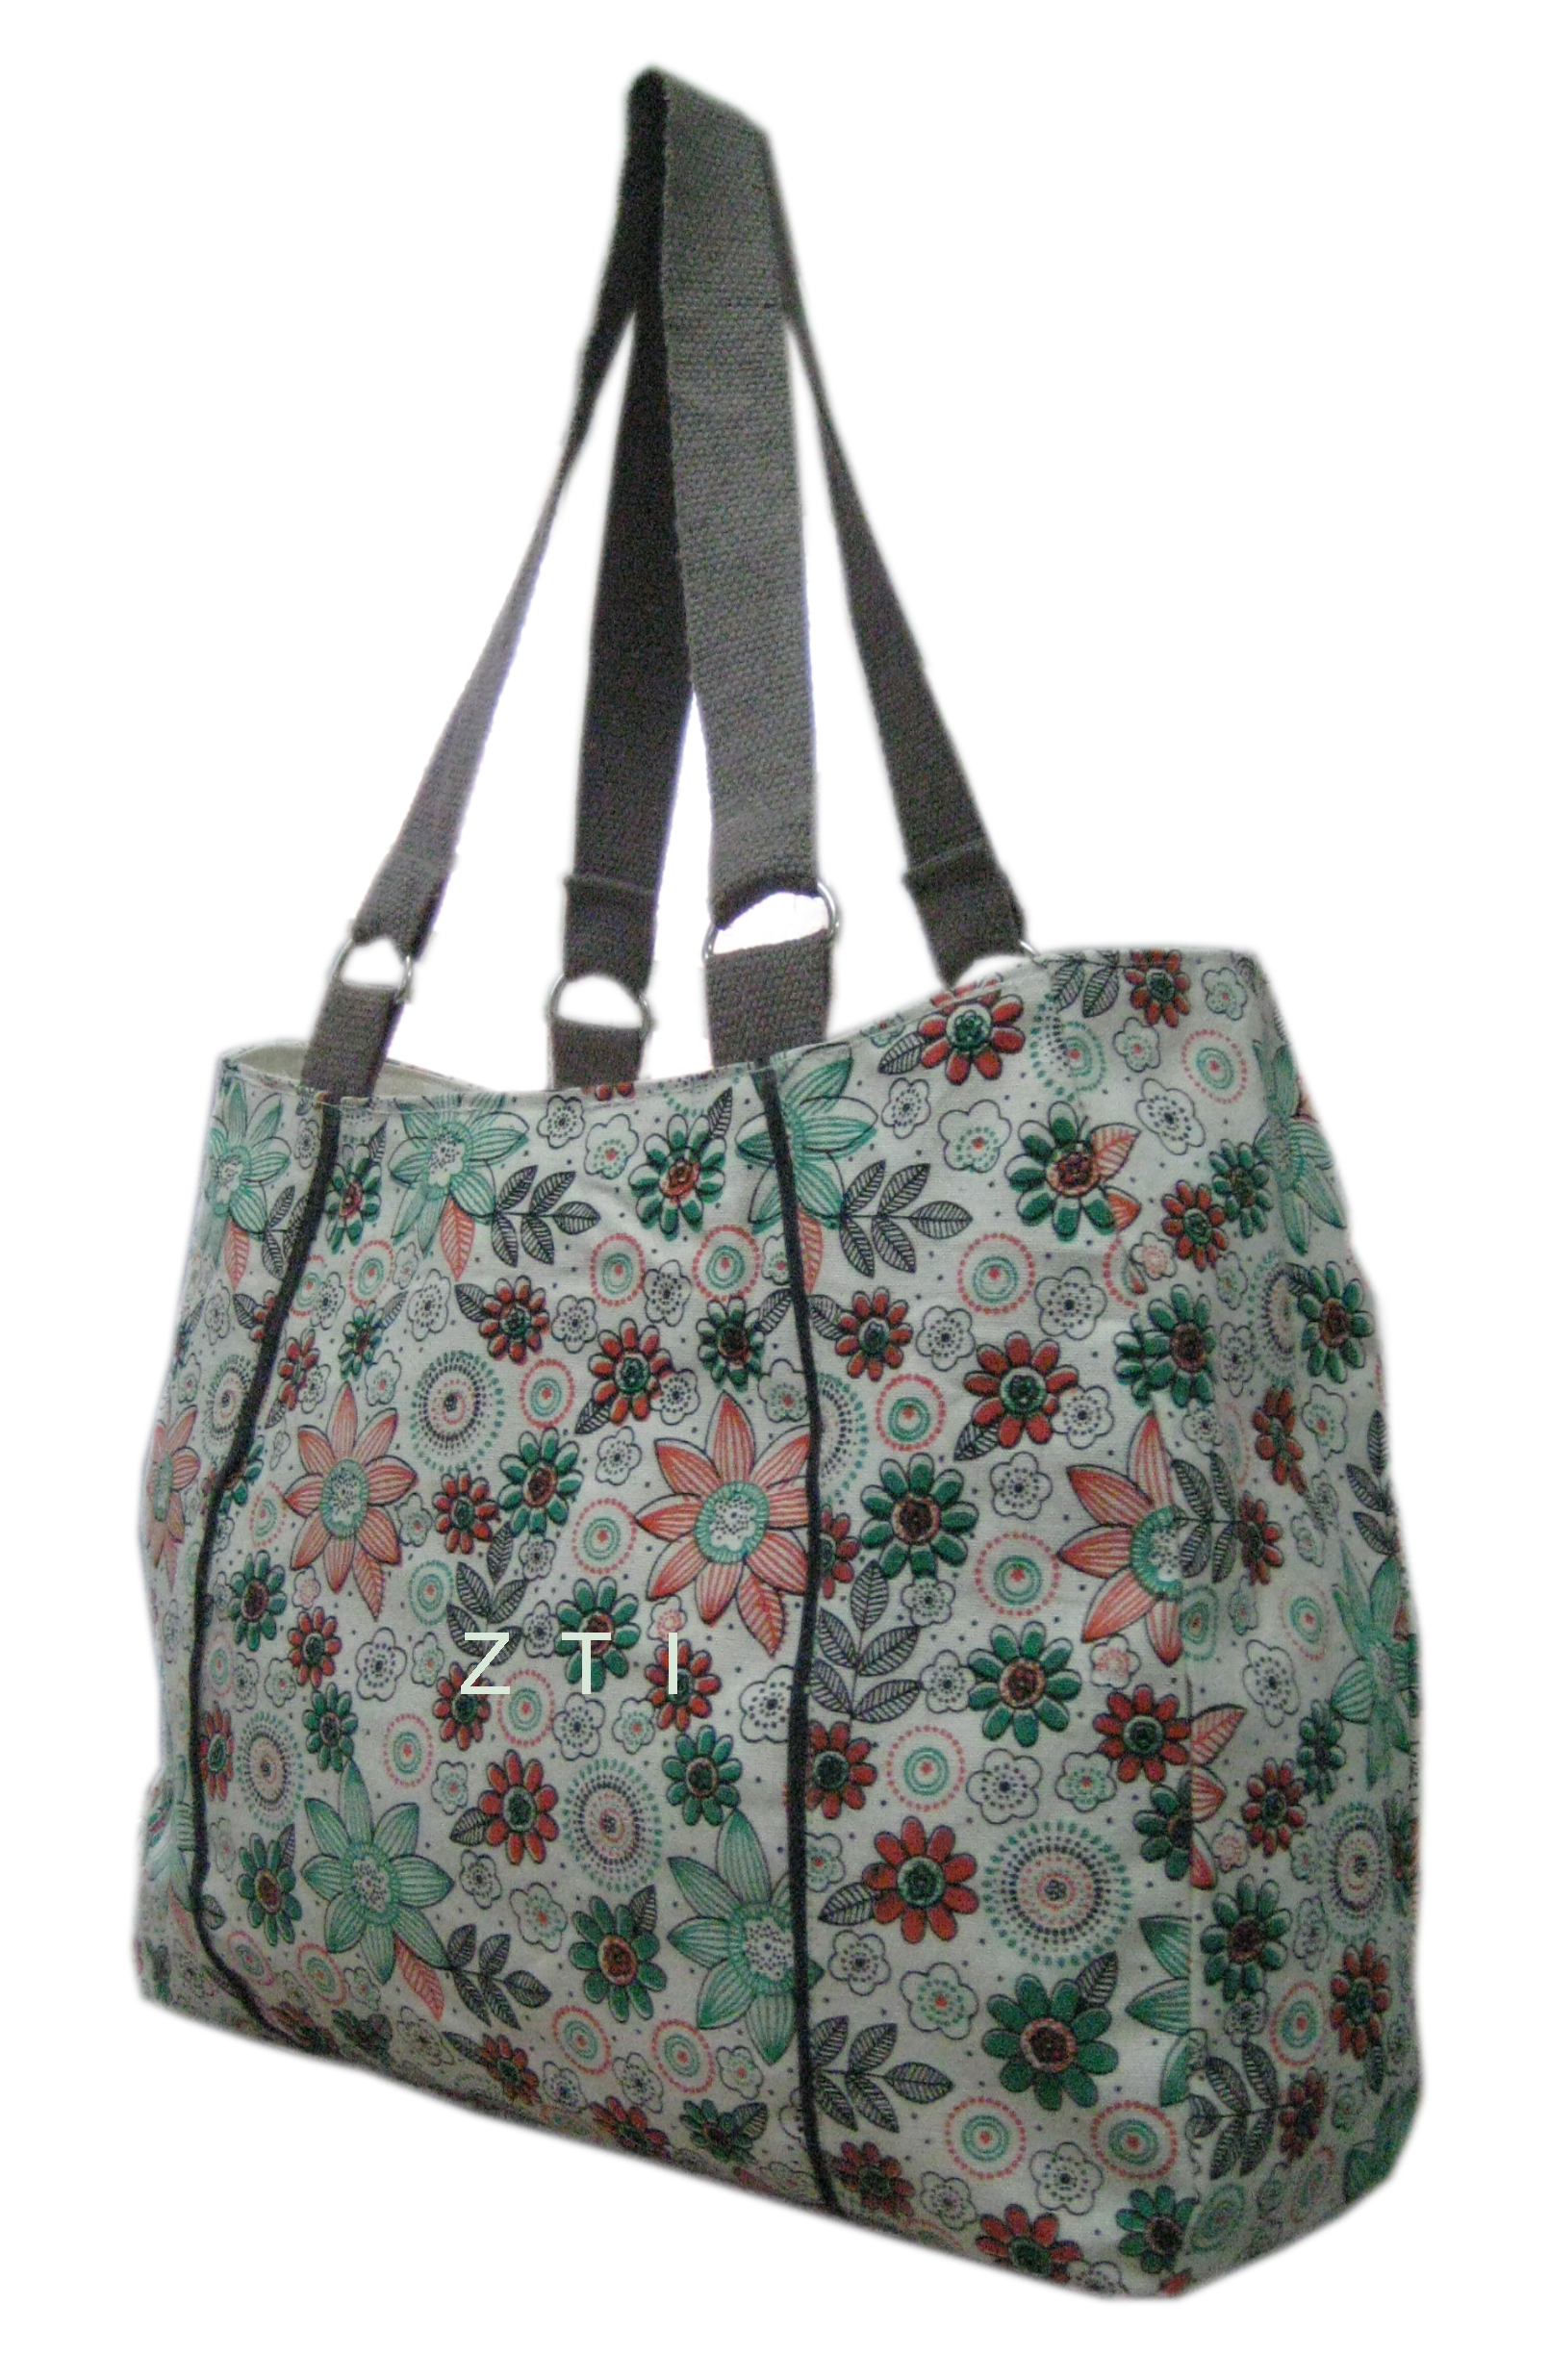 MODEL-NO.-CCB-1193-SIZE-45x35x12cms.-PRICE-US-1.75